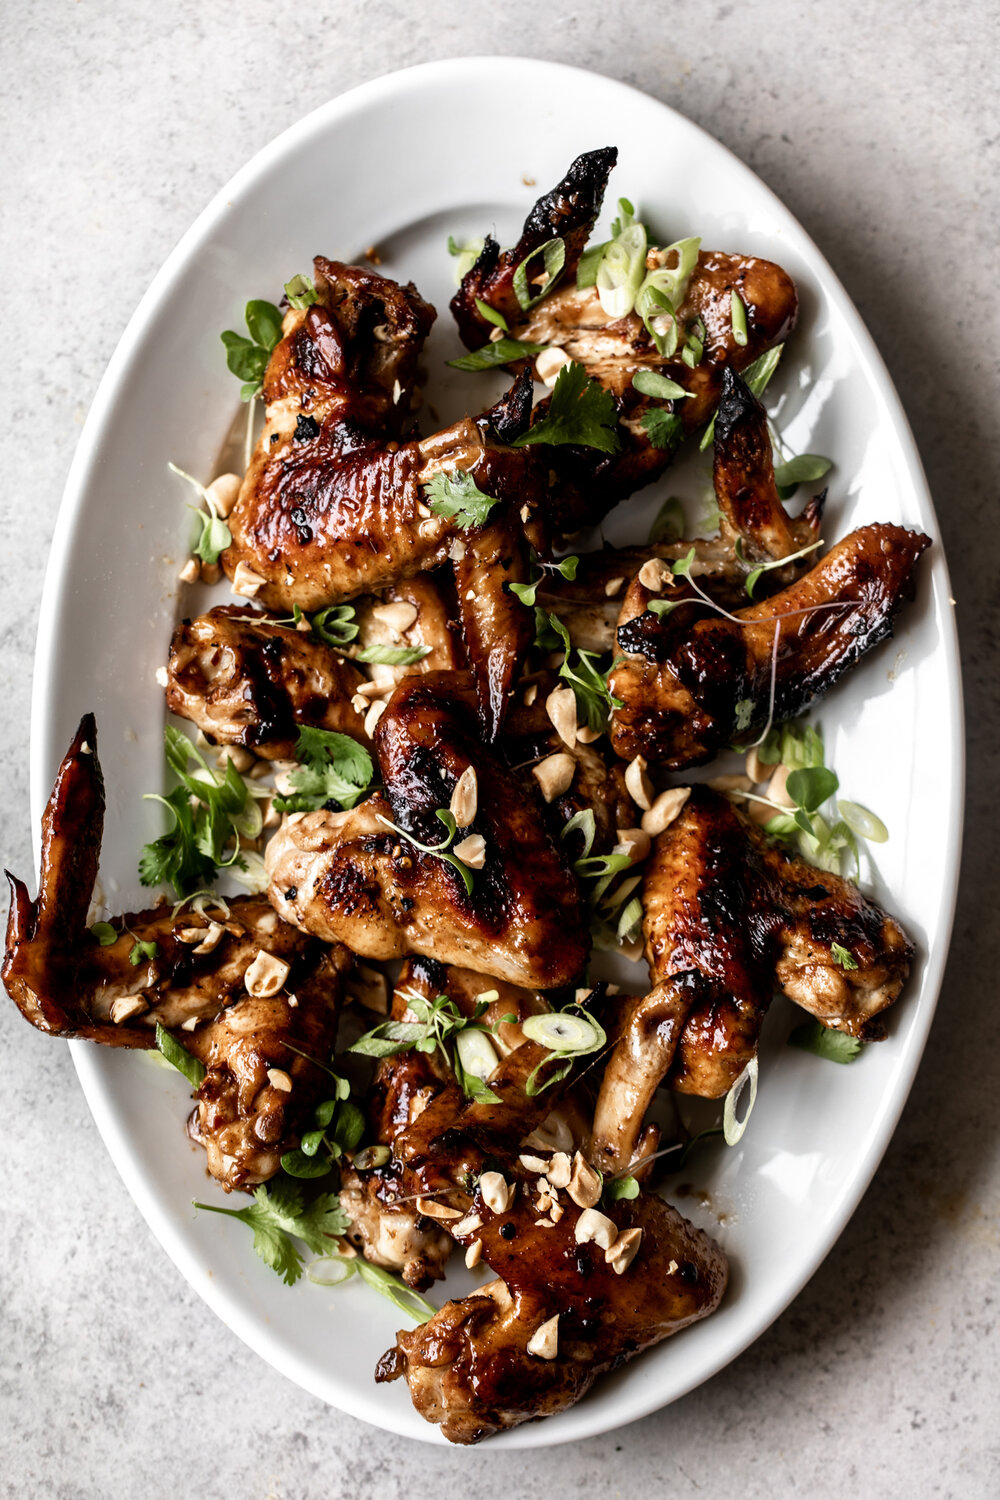 Grilled Garlic Soy Chicken Wings with Herbs & Peanuts-31.jpg